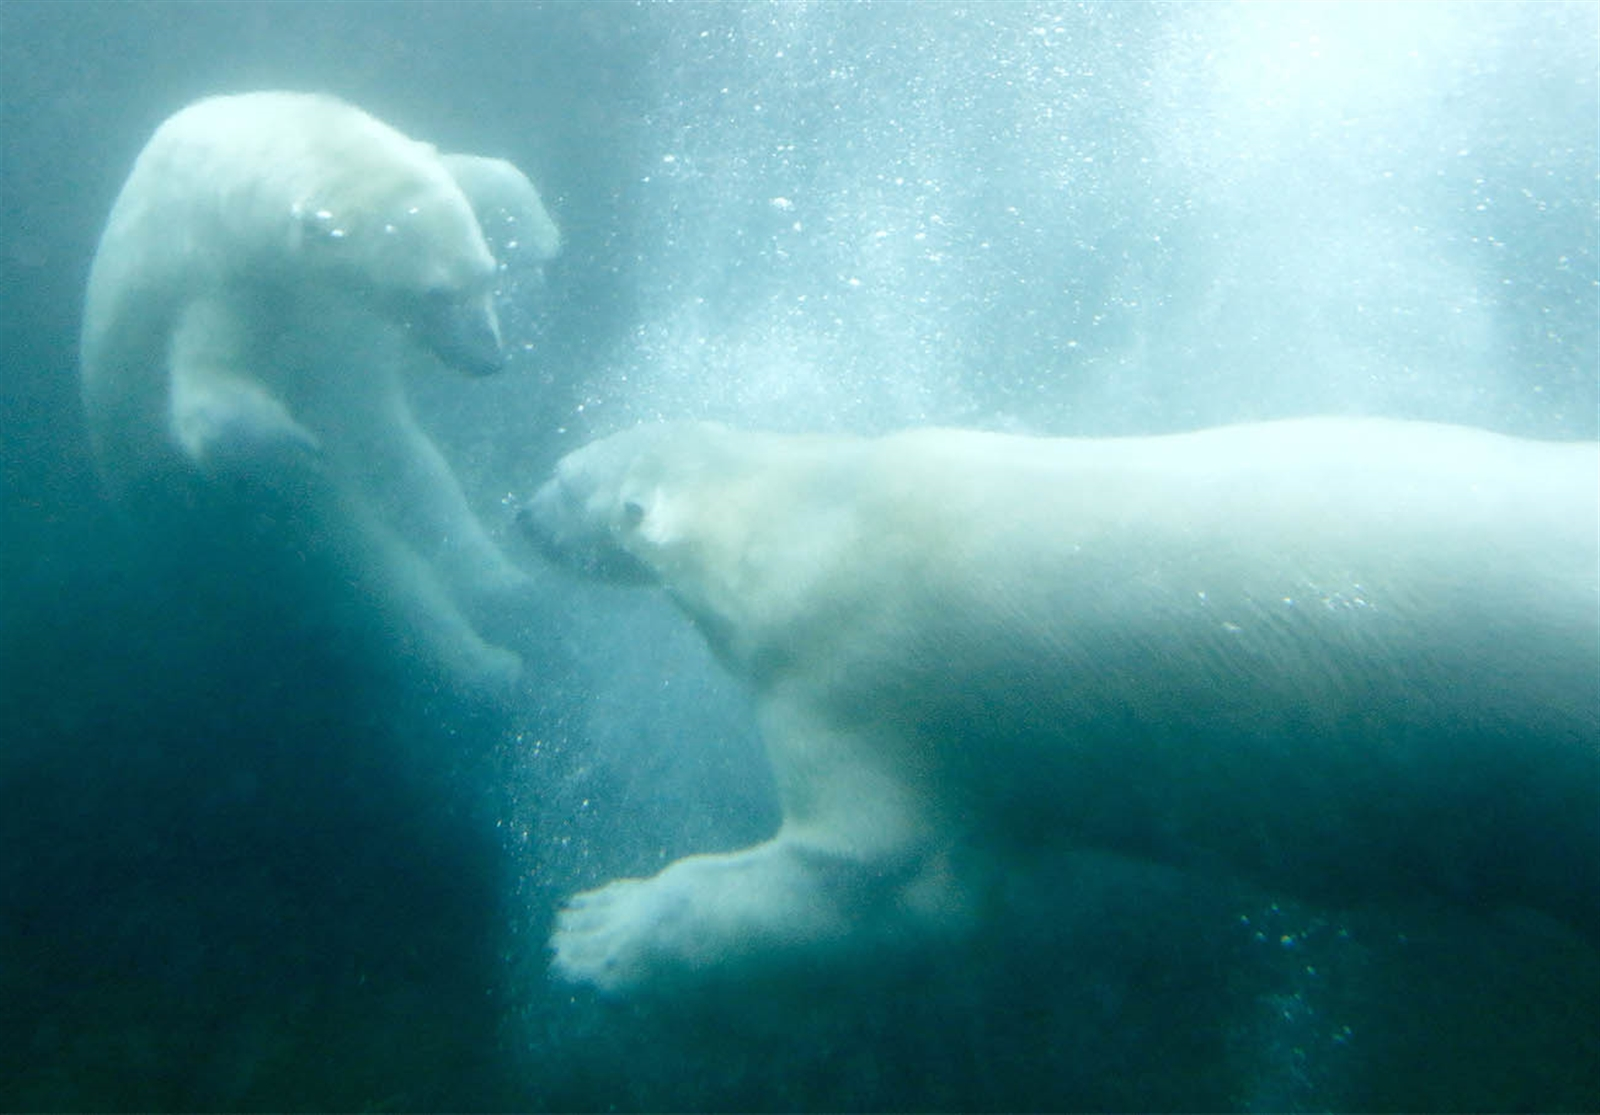 Sakari, right, and Luna, the polar bears, have recently been united just in time for Valentine's Day. They are frolicking in their shared area at the Buffalo Zoo.